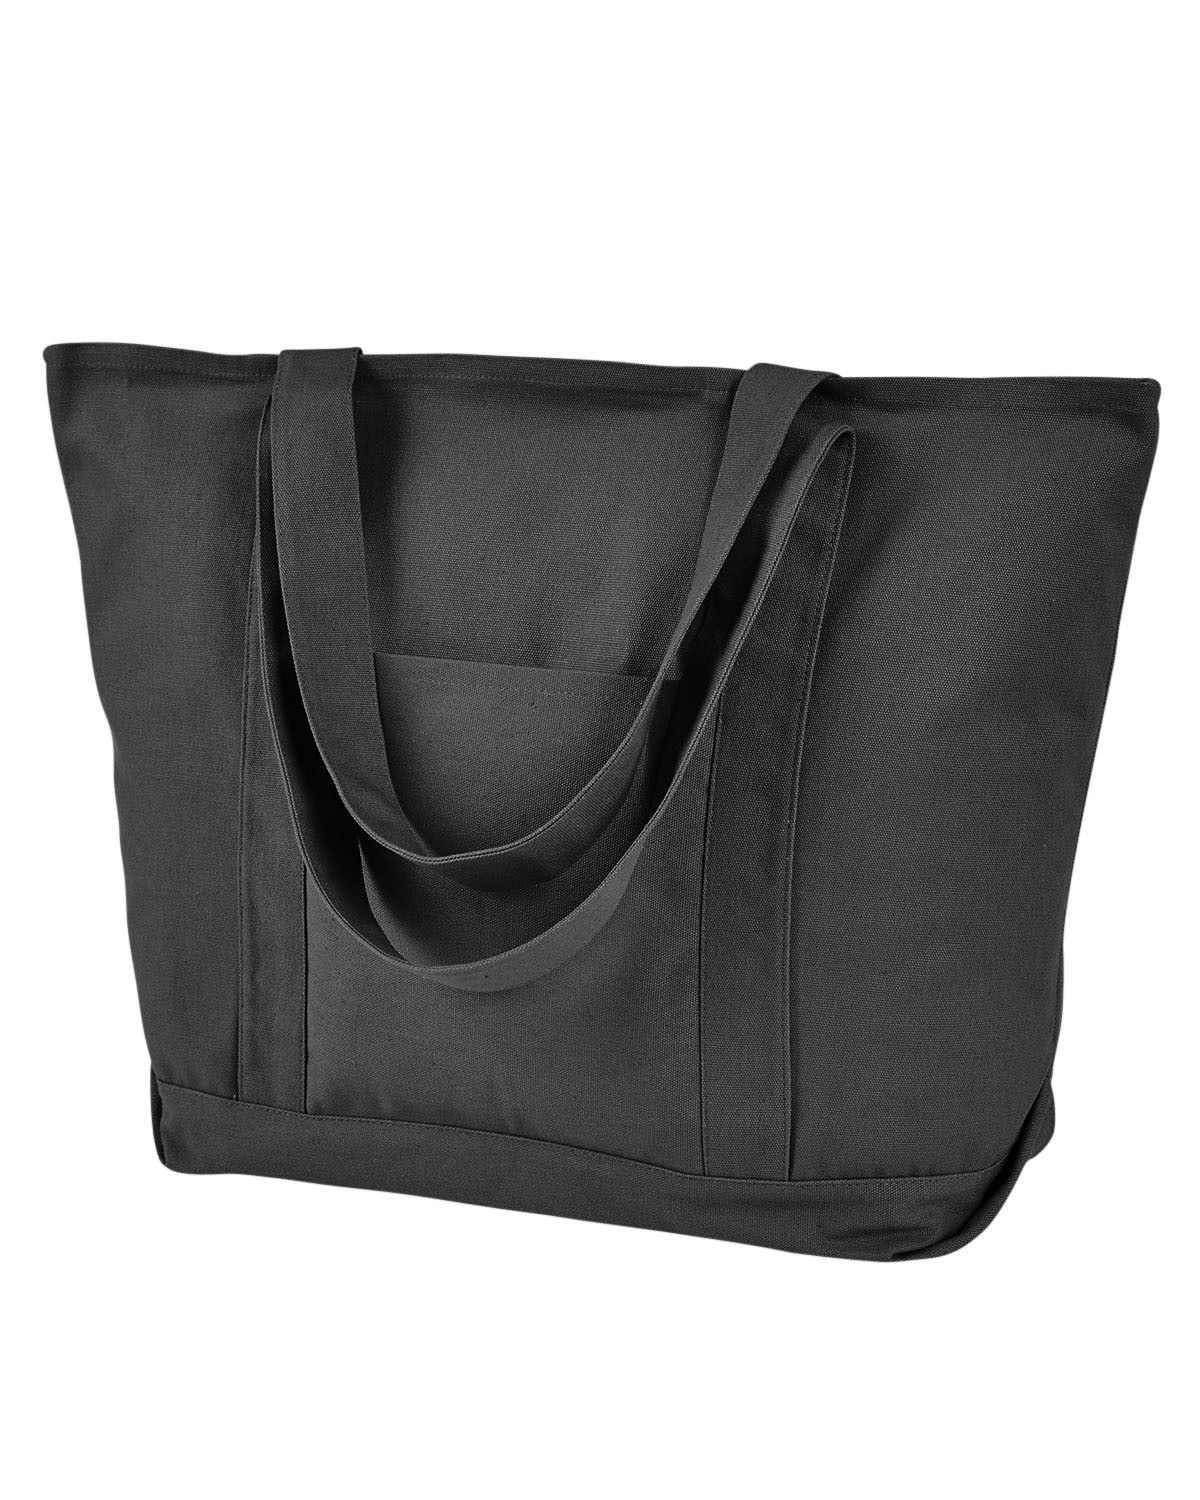 8879 Liberty Bags WASHED BLACK